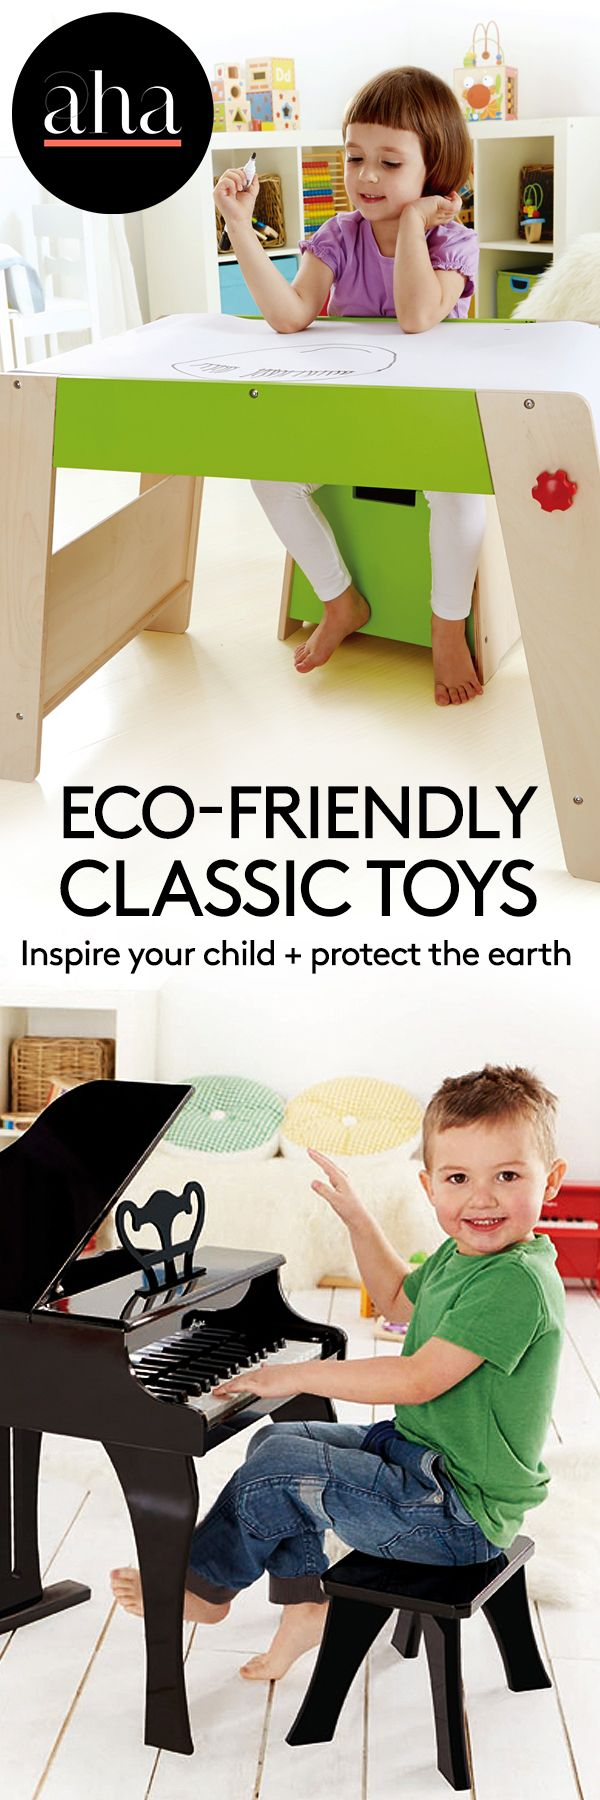 Hape Toys - Although Hape Toys products are inspiring renditions of classic and timeless children's favorites, they are the result of a sustainable and eco-friendly production process that supports educational charities overseas. Shop now: http://www.ahalife.com/hape-toys?utm_source=Pinterest&utm_medium=ads&utm_campaign=HapeToys_Android&rw=0